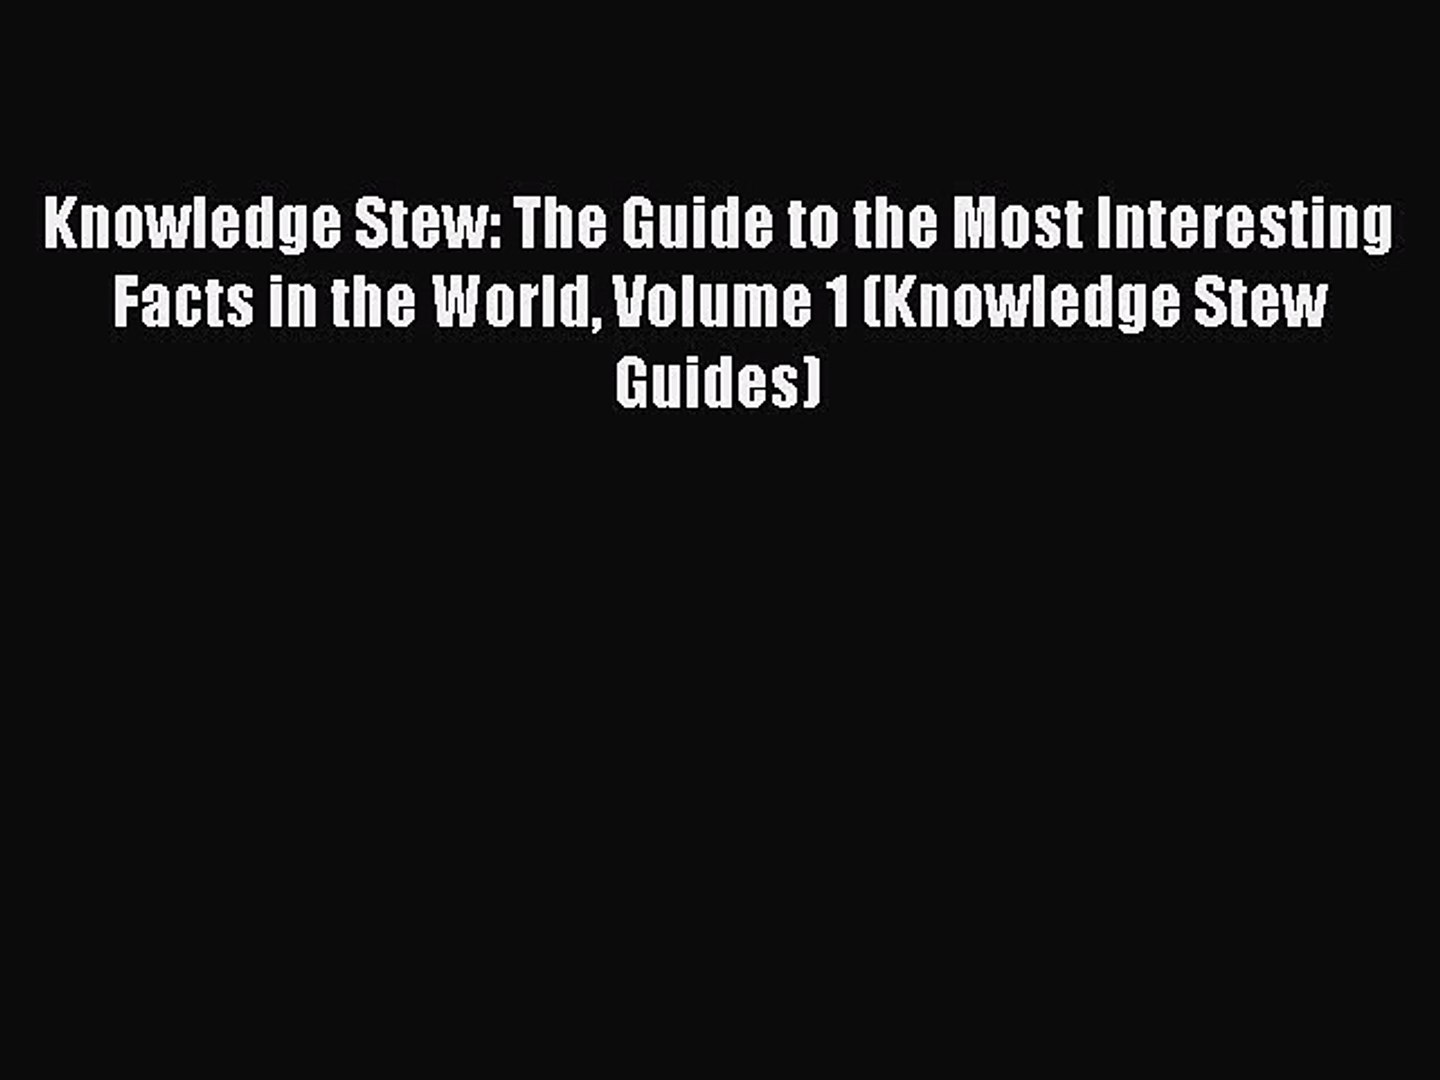 Most Interesting Facts >> Read Knowledge Stew The Guide To The Most Interesting Facts In The World Volume 1 Knowledge